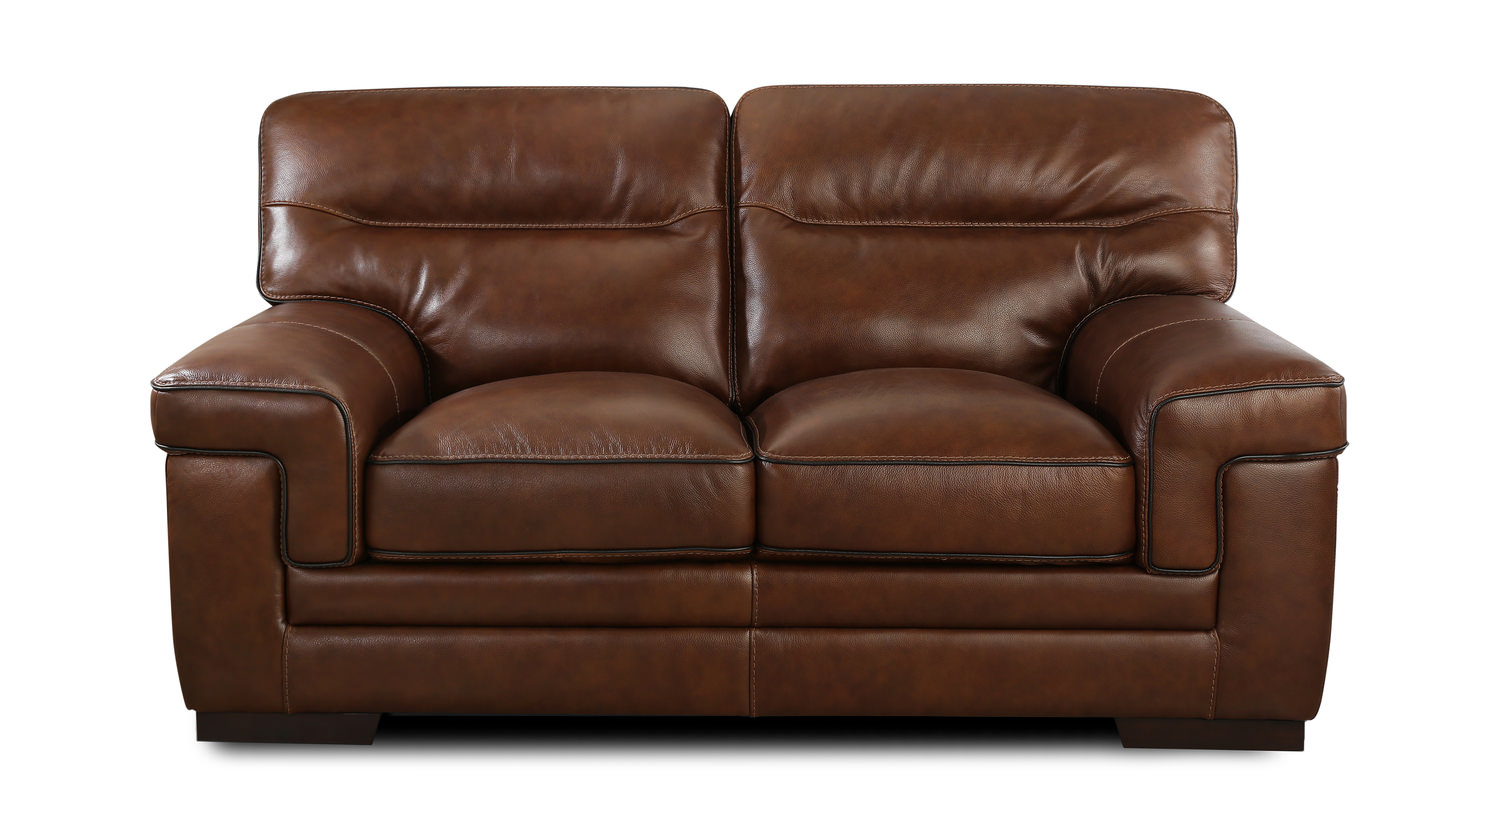 100% Genuine Leather, The Lancia Loveseat Offers Plush Comfort With Its  Supple Thick Leather, Deep Seat Cushions, Supportive Sectioned Off Back And  Padded ...